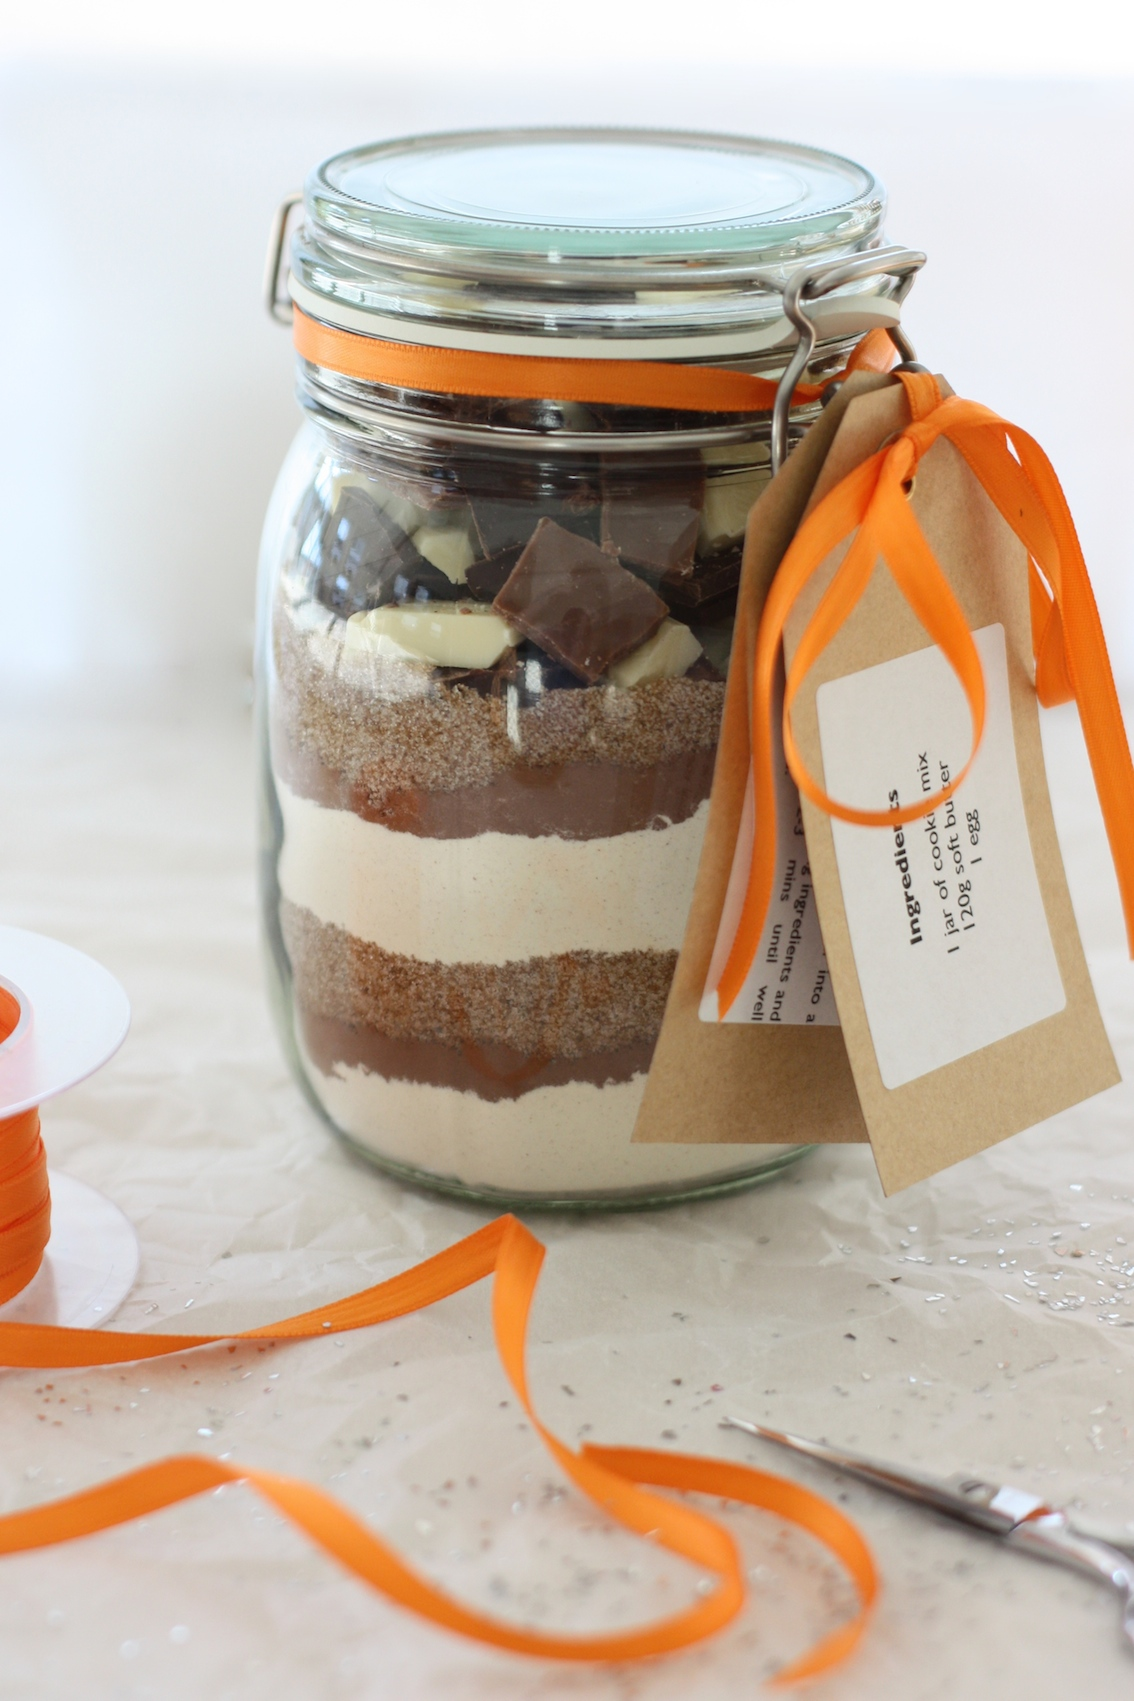 Jars of cookie mix are always popular homemade food gifts